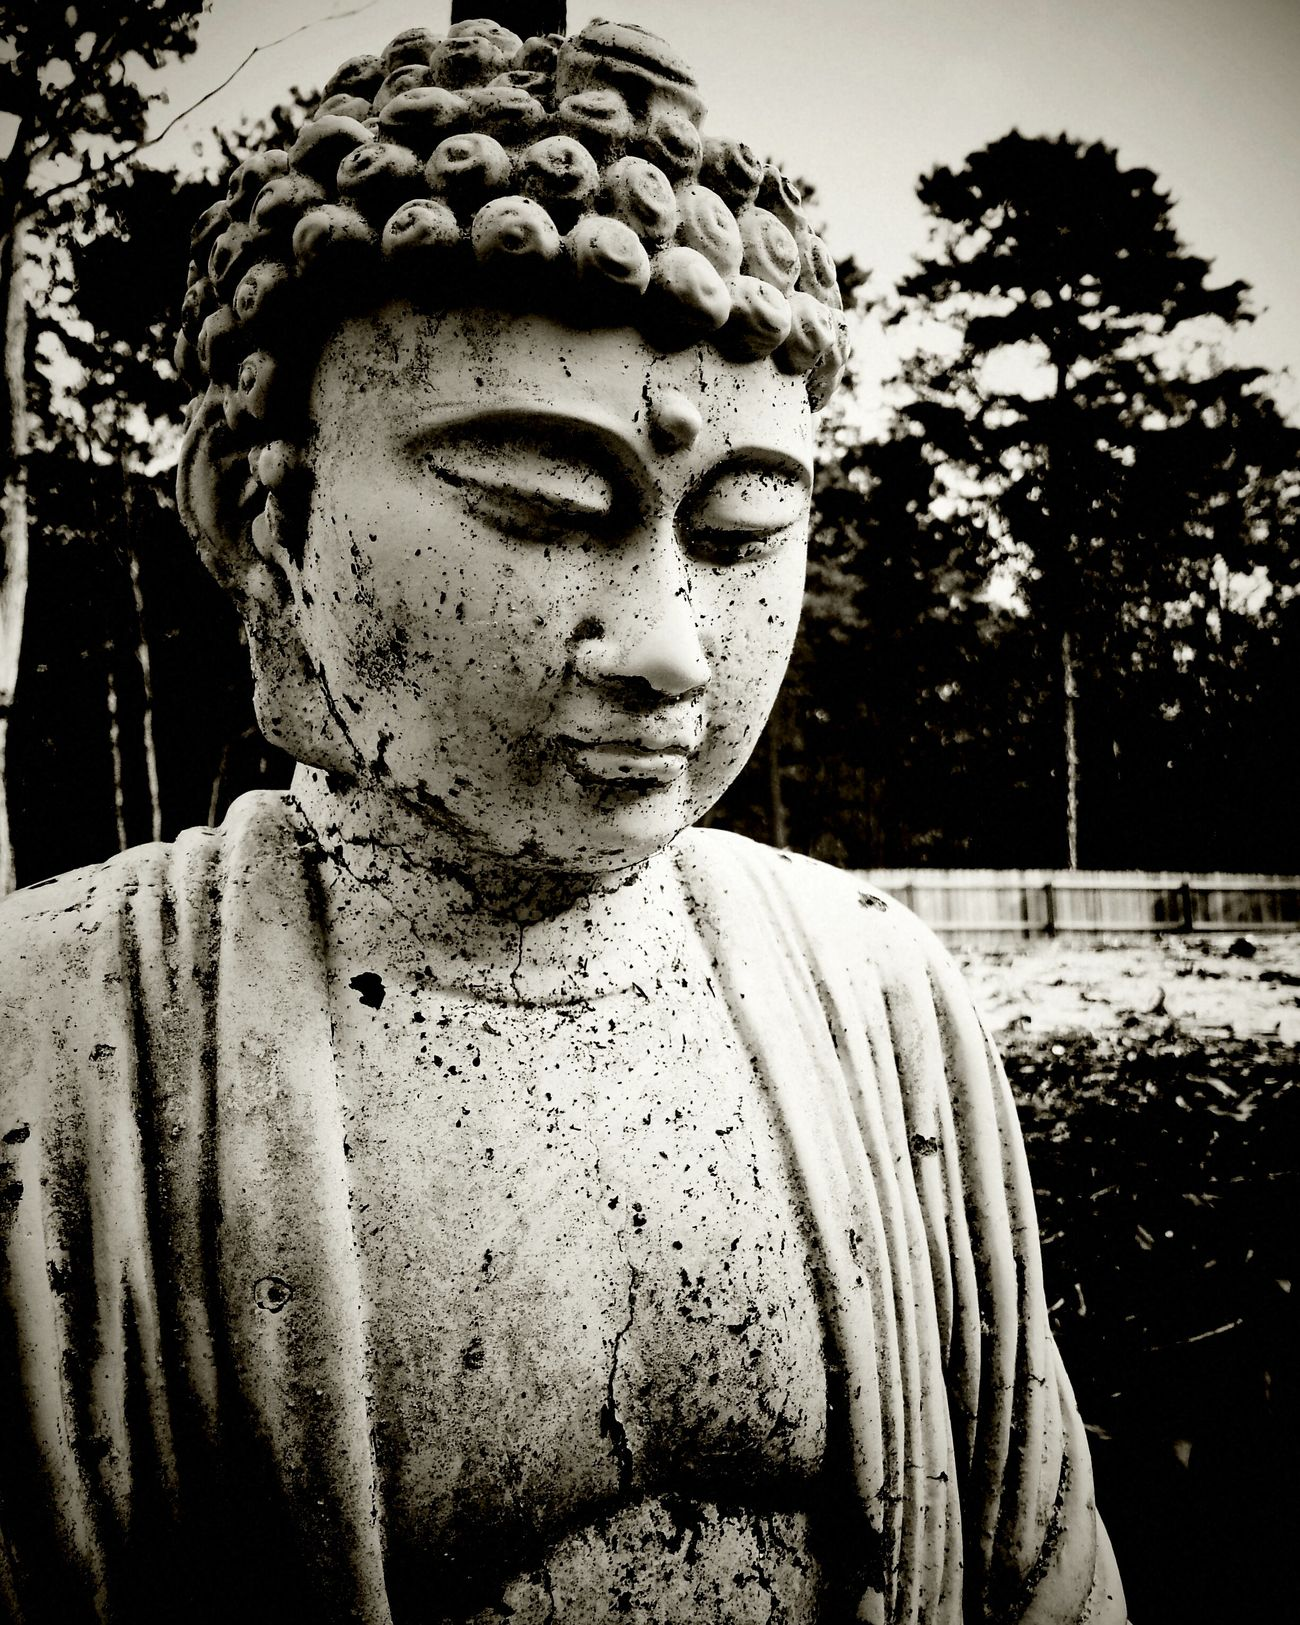 My Monochrome World Buddha Blackandwhite Monochrome